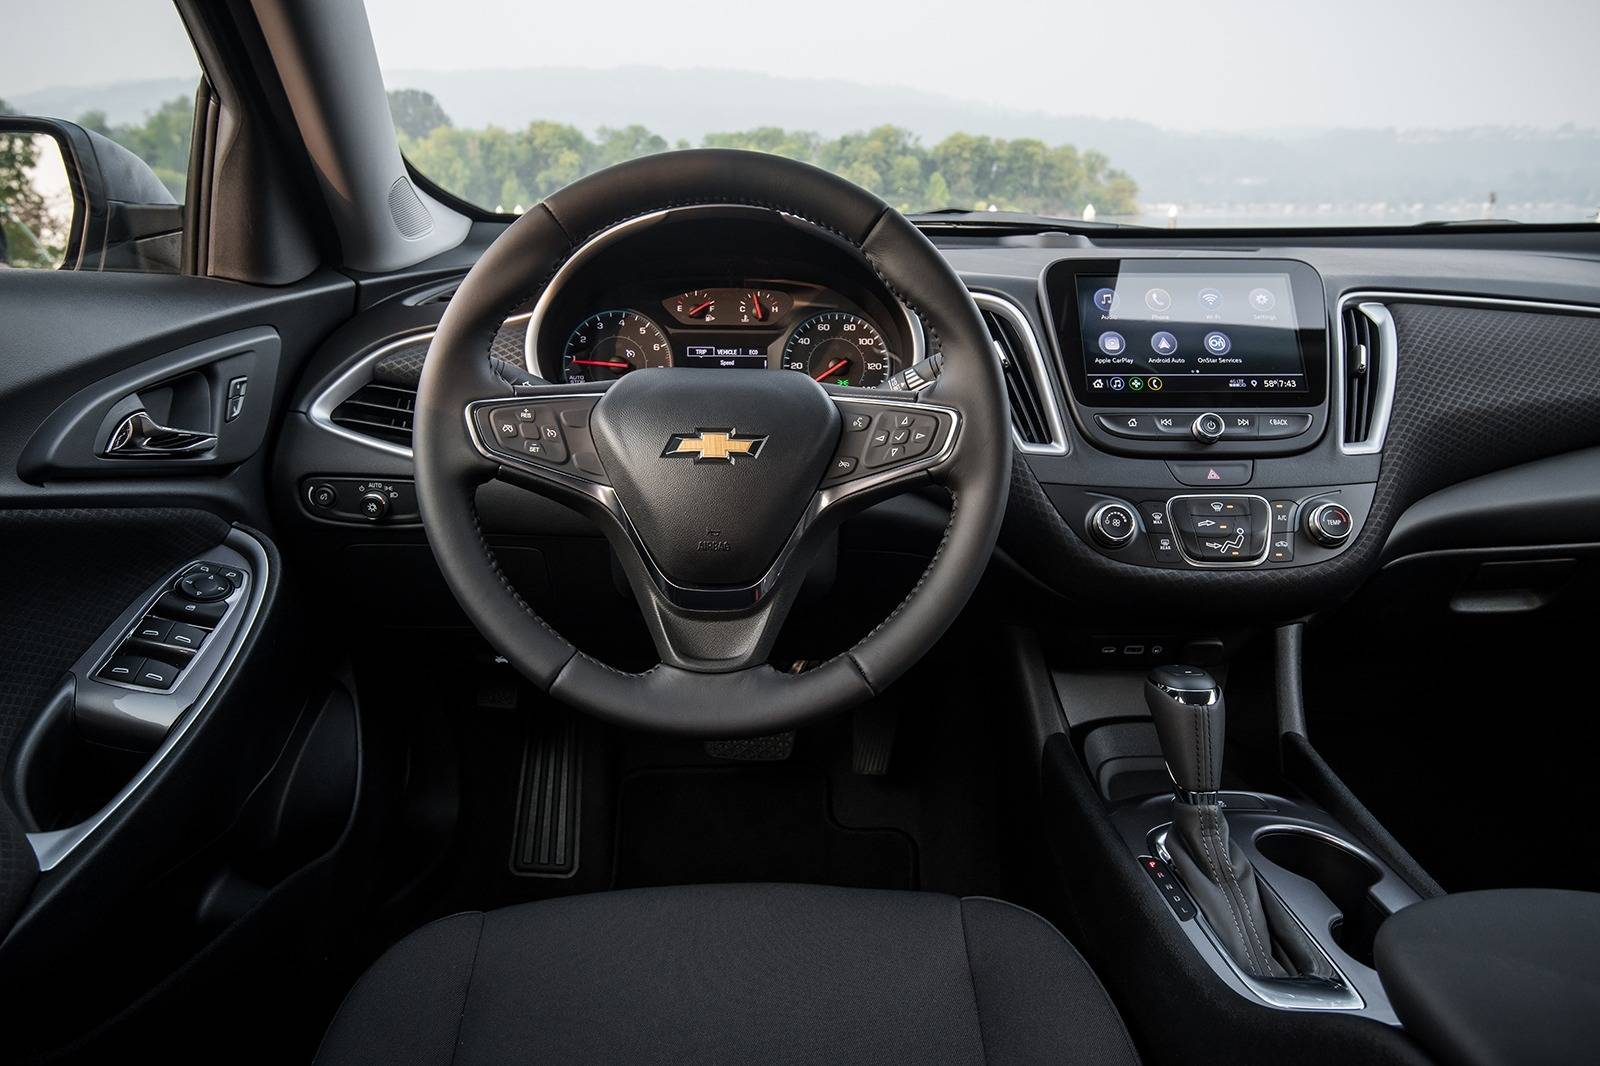 90 The Best 2019 Chevy Malibu New Review